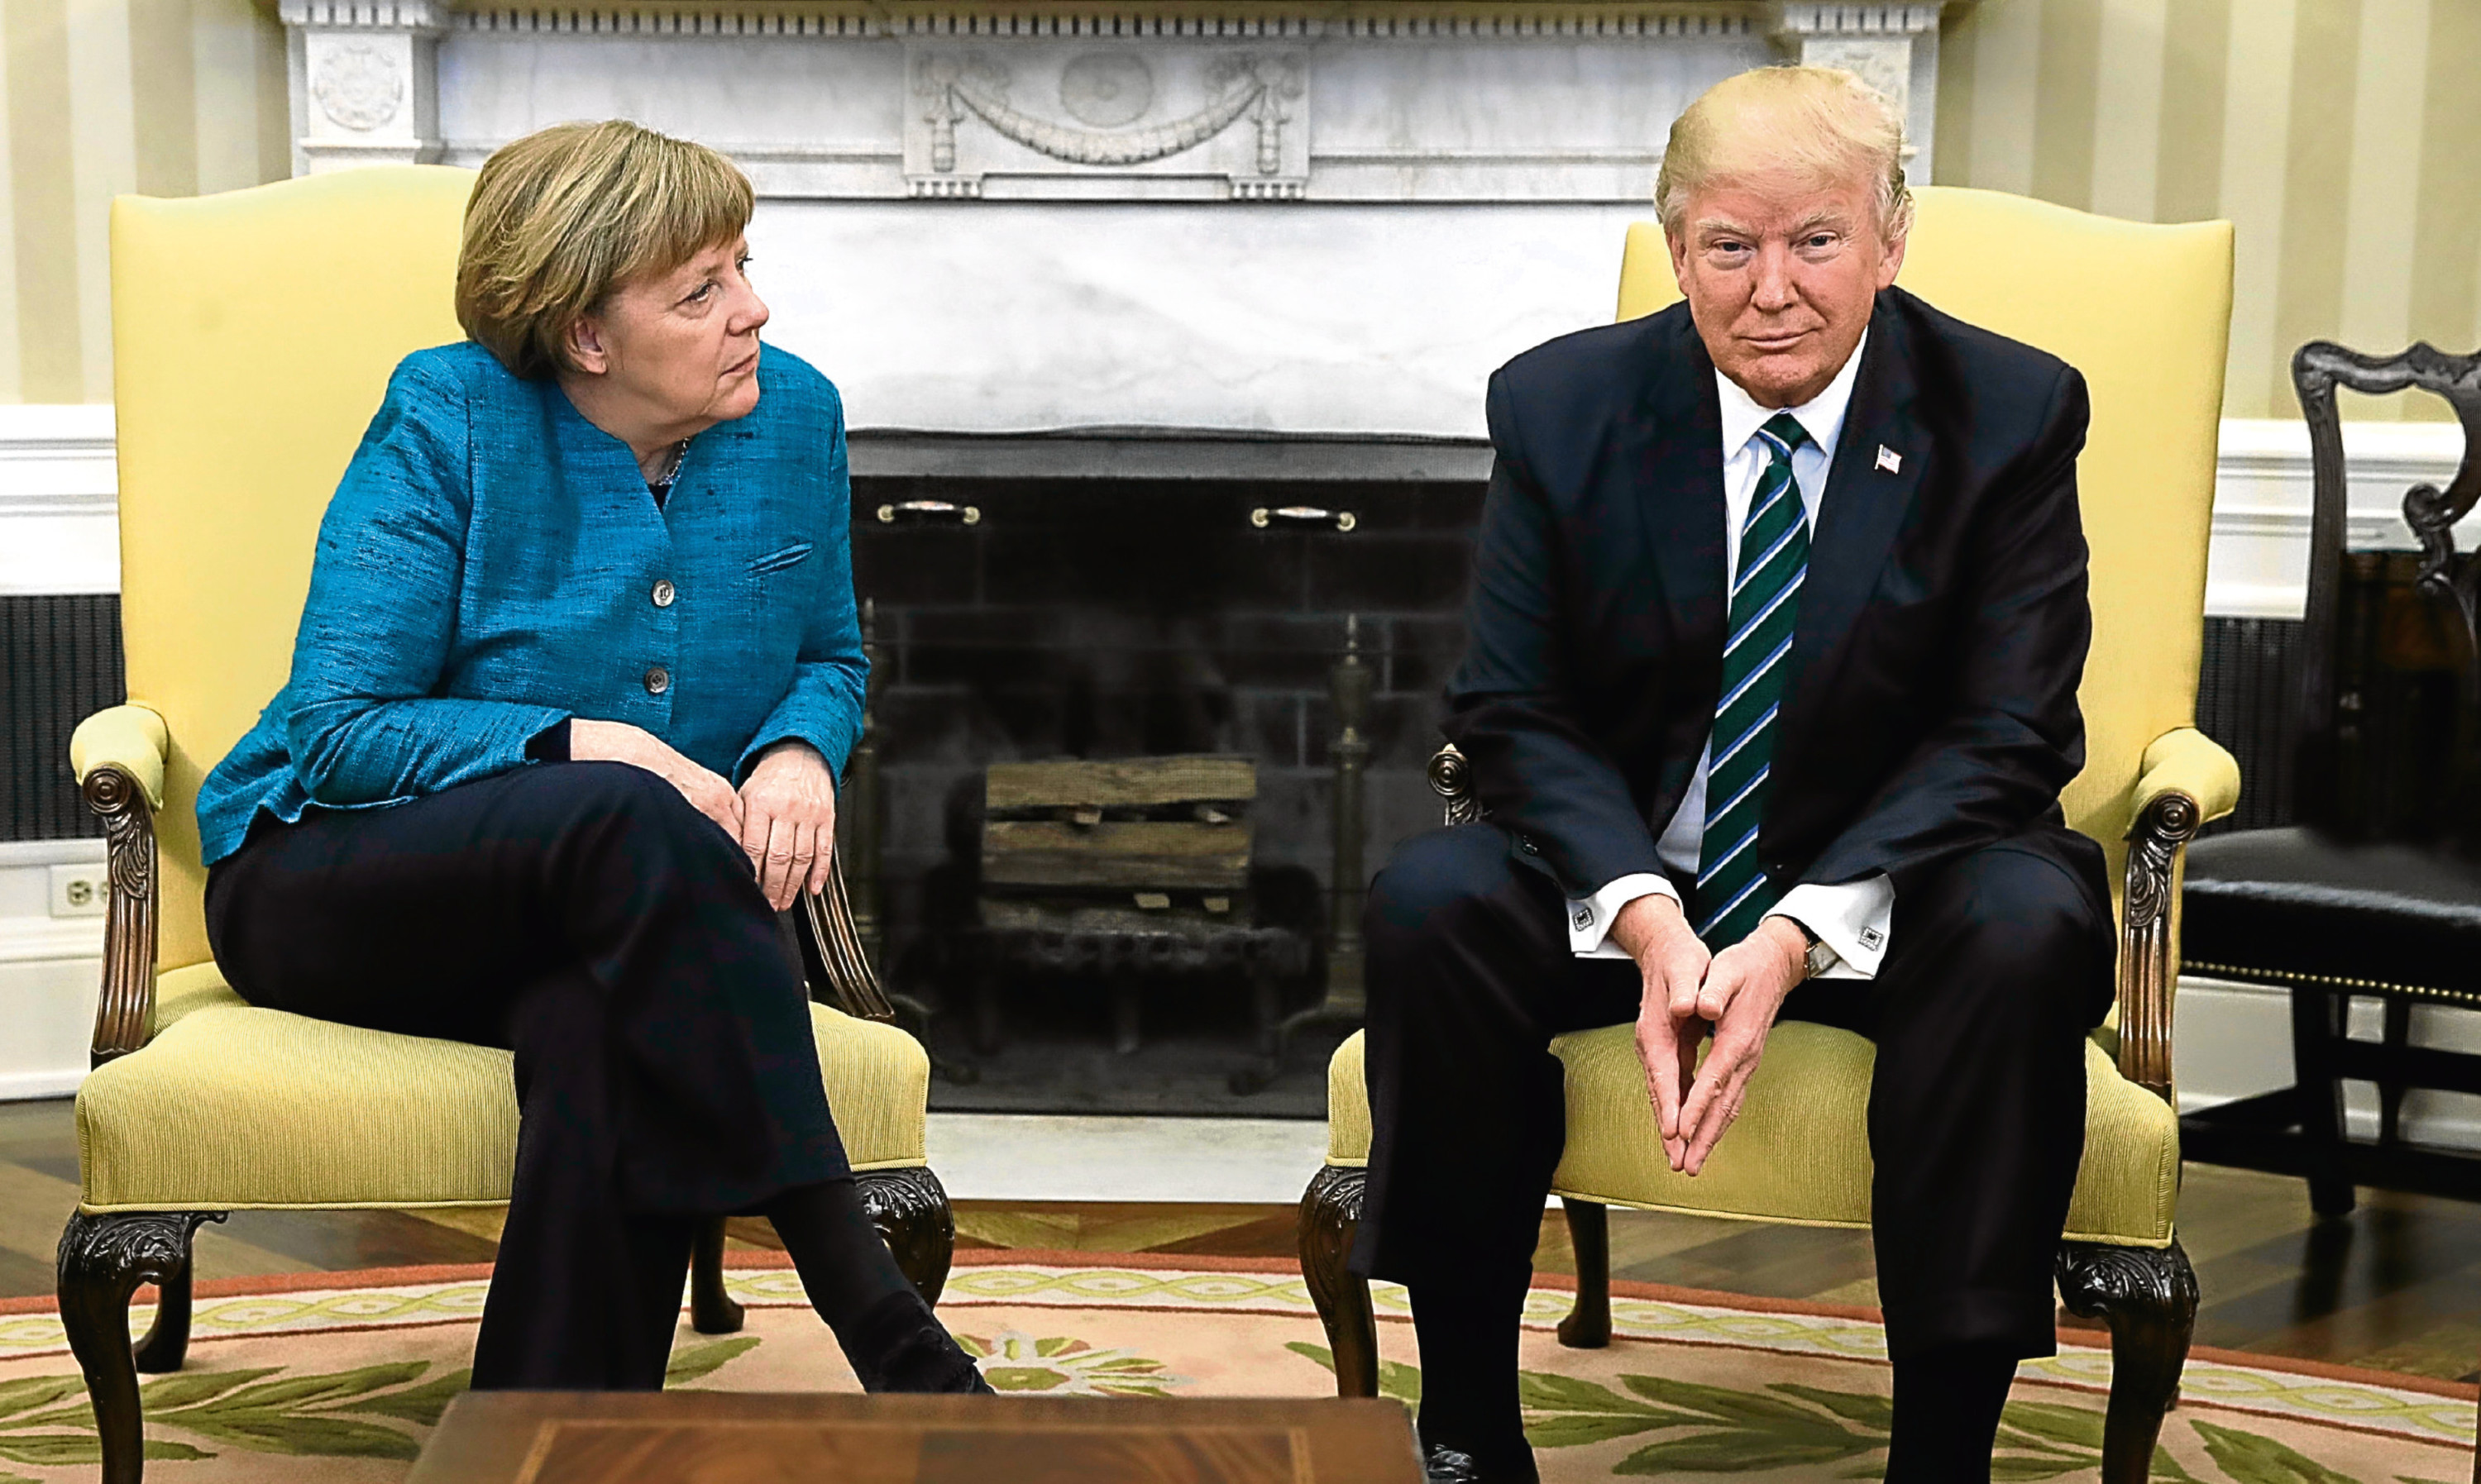 An awkward moment when Angela Merkel met Donald Trump sums up for Jim why communication is so vital in the modern world.